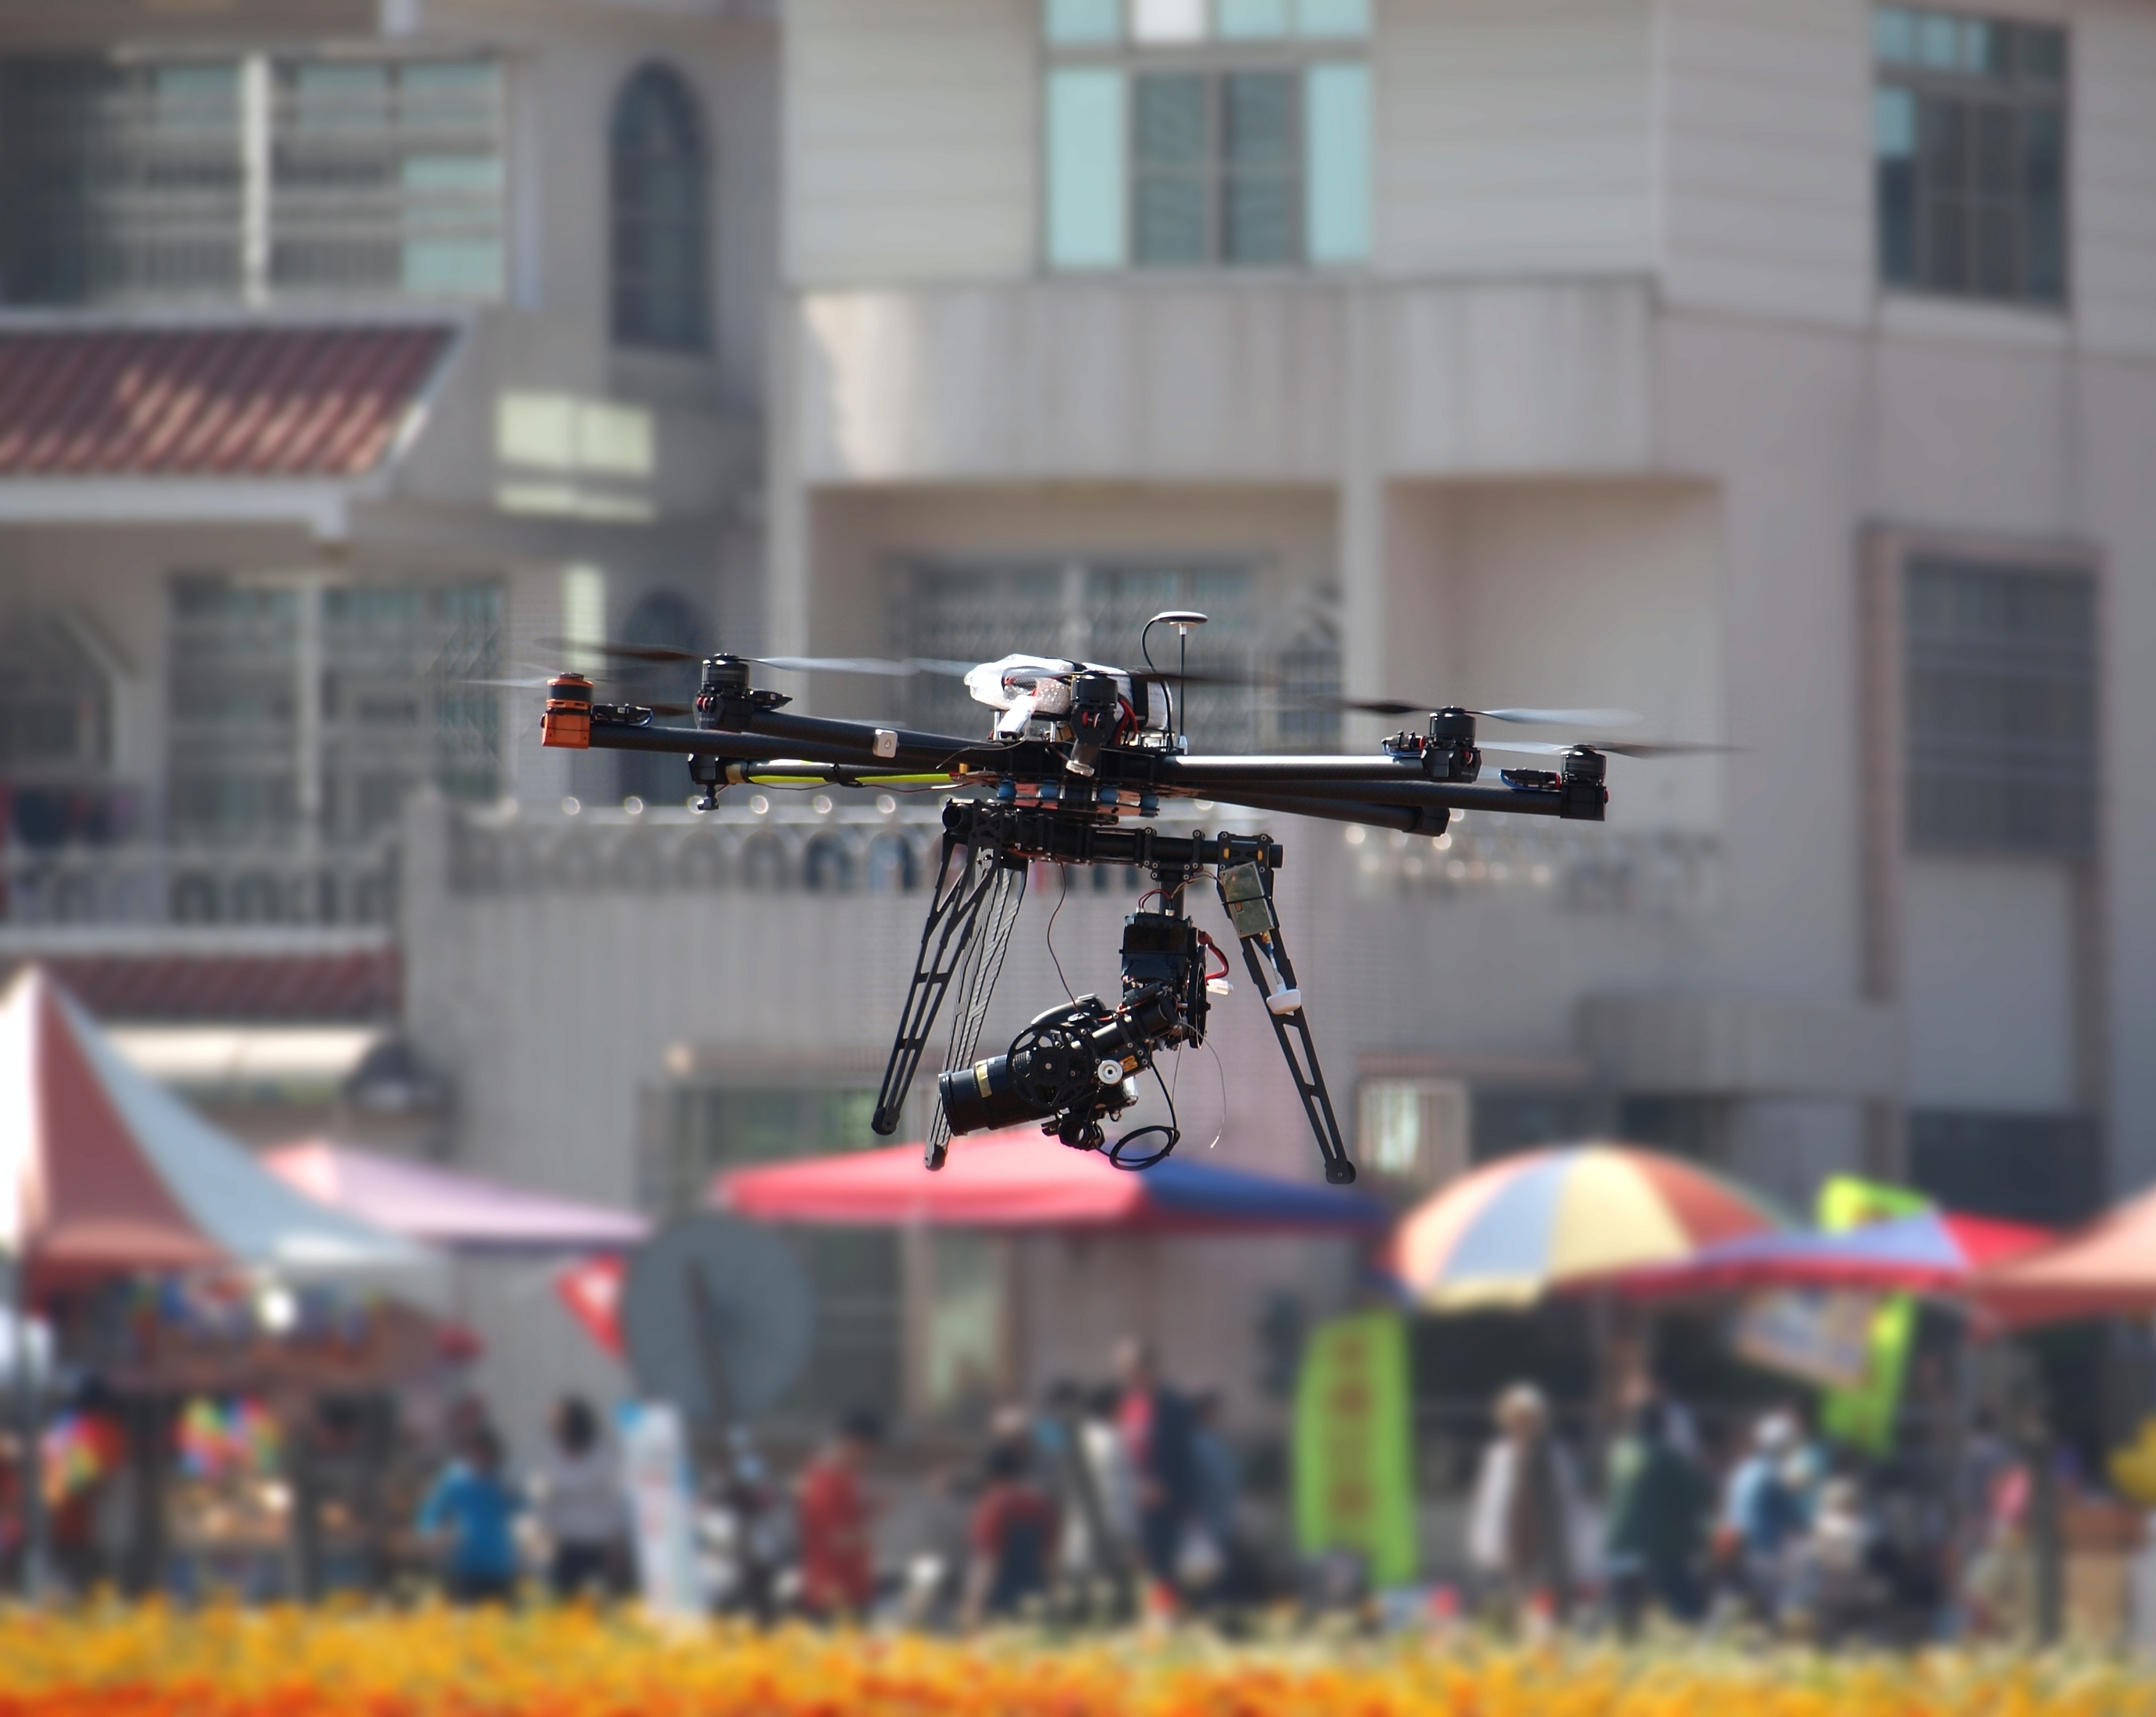 Private Investigators Are Using Drones After Legal Ruling -